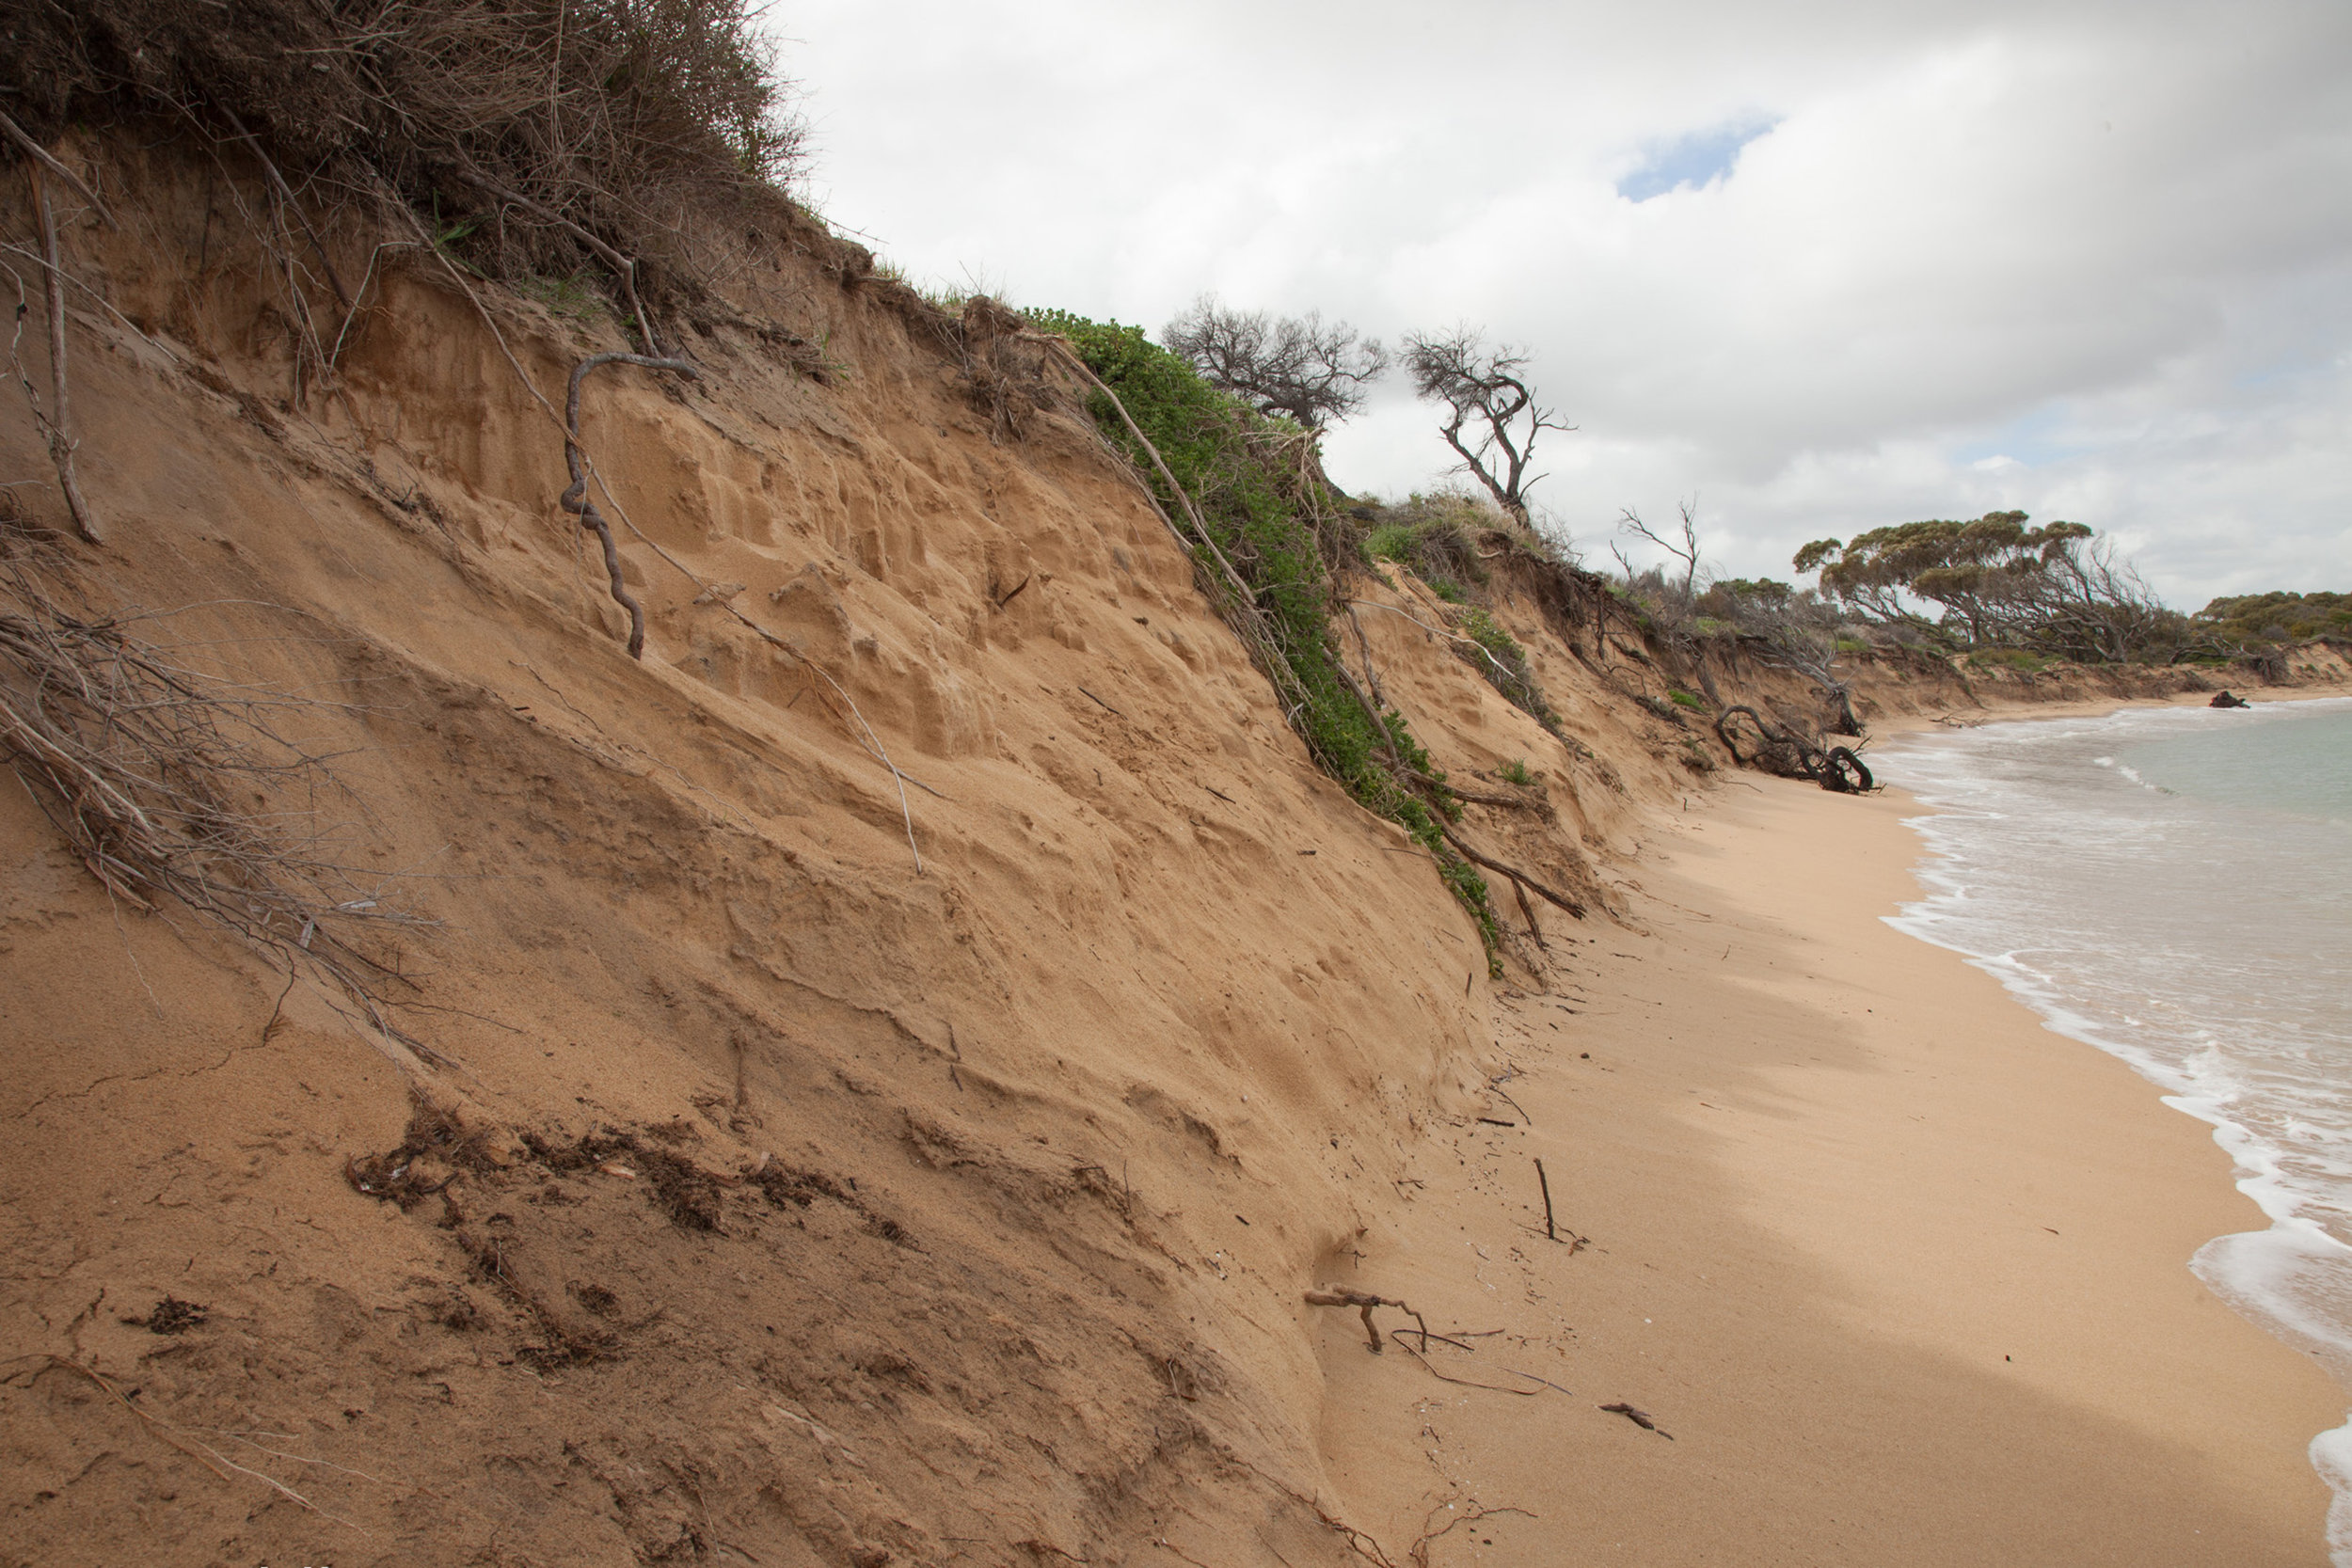 Plate 13: Some of the erosion on the first section of the beach walk from Cape Peron towards Shoalwater